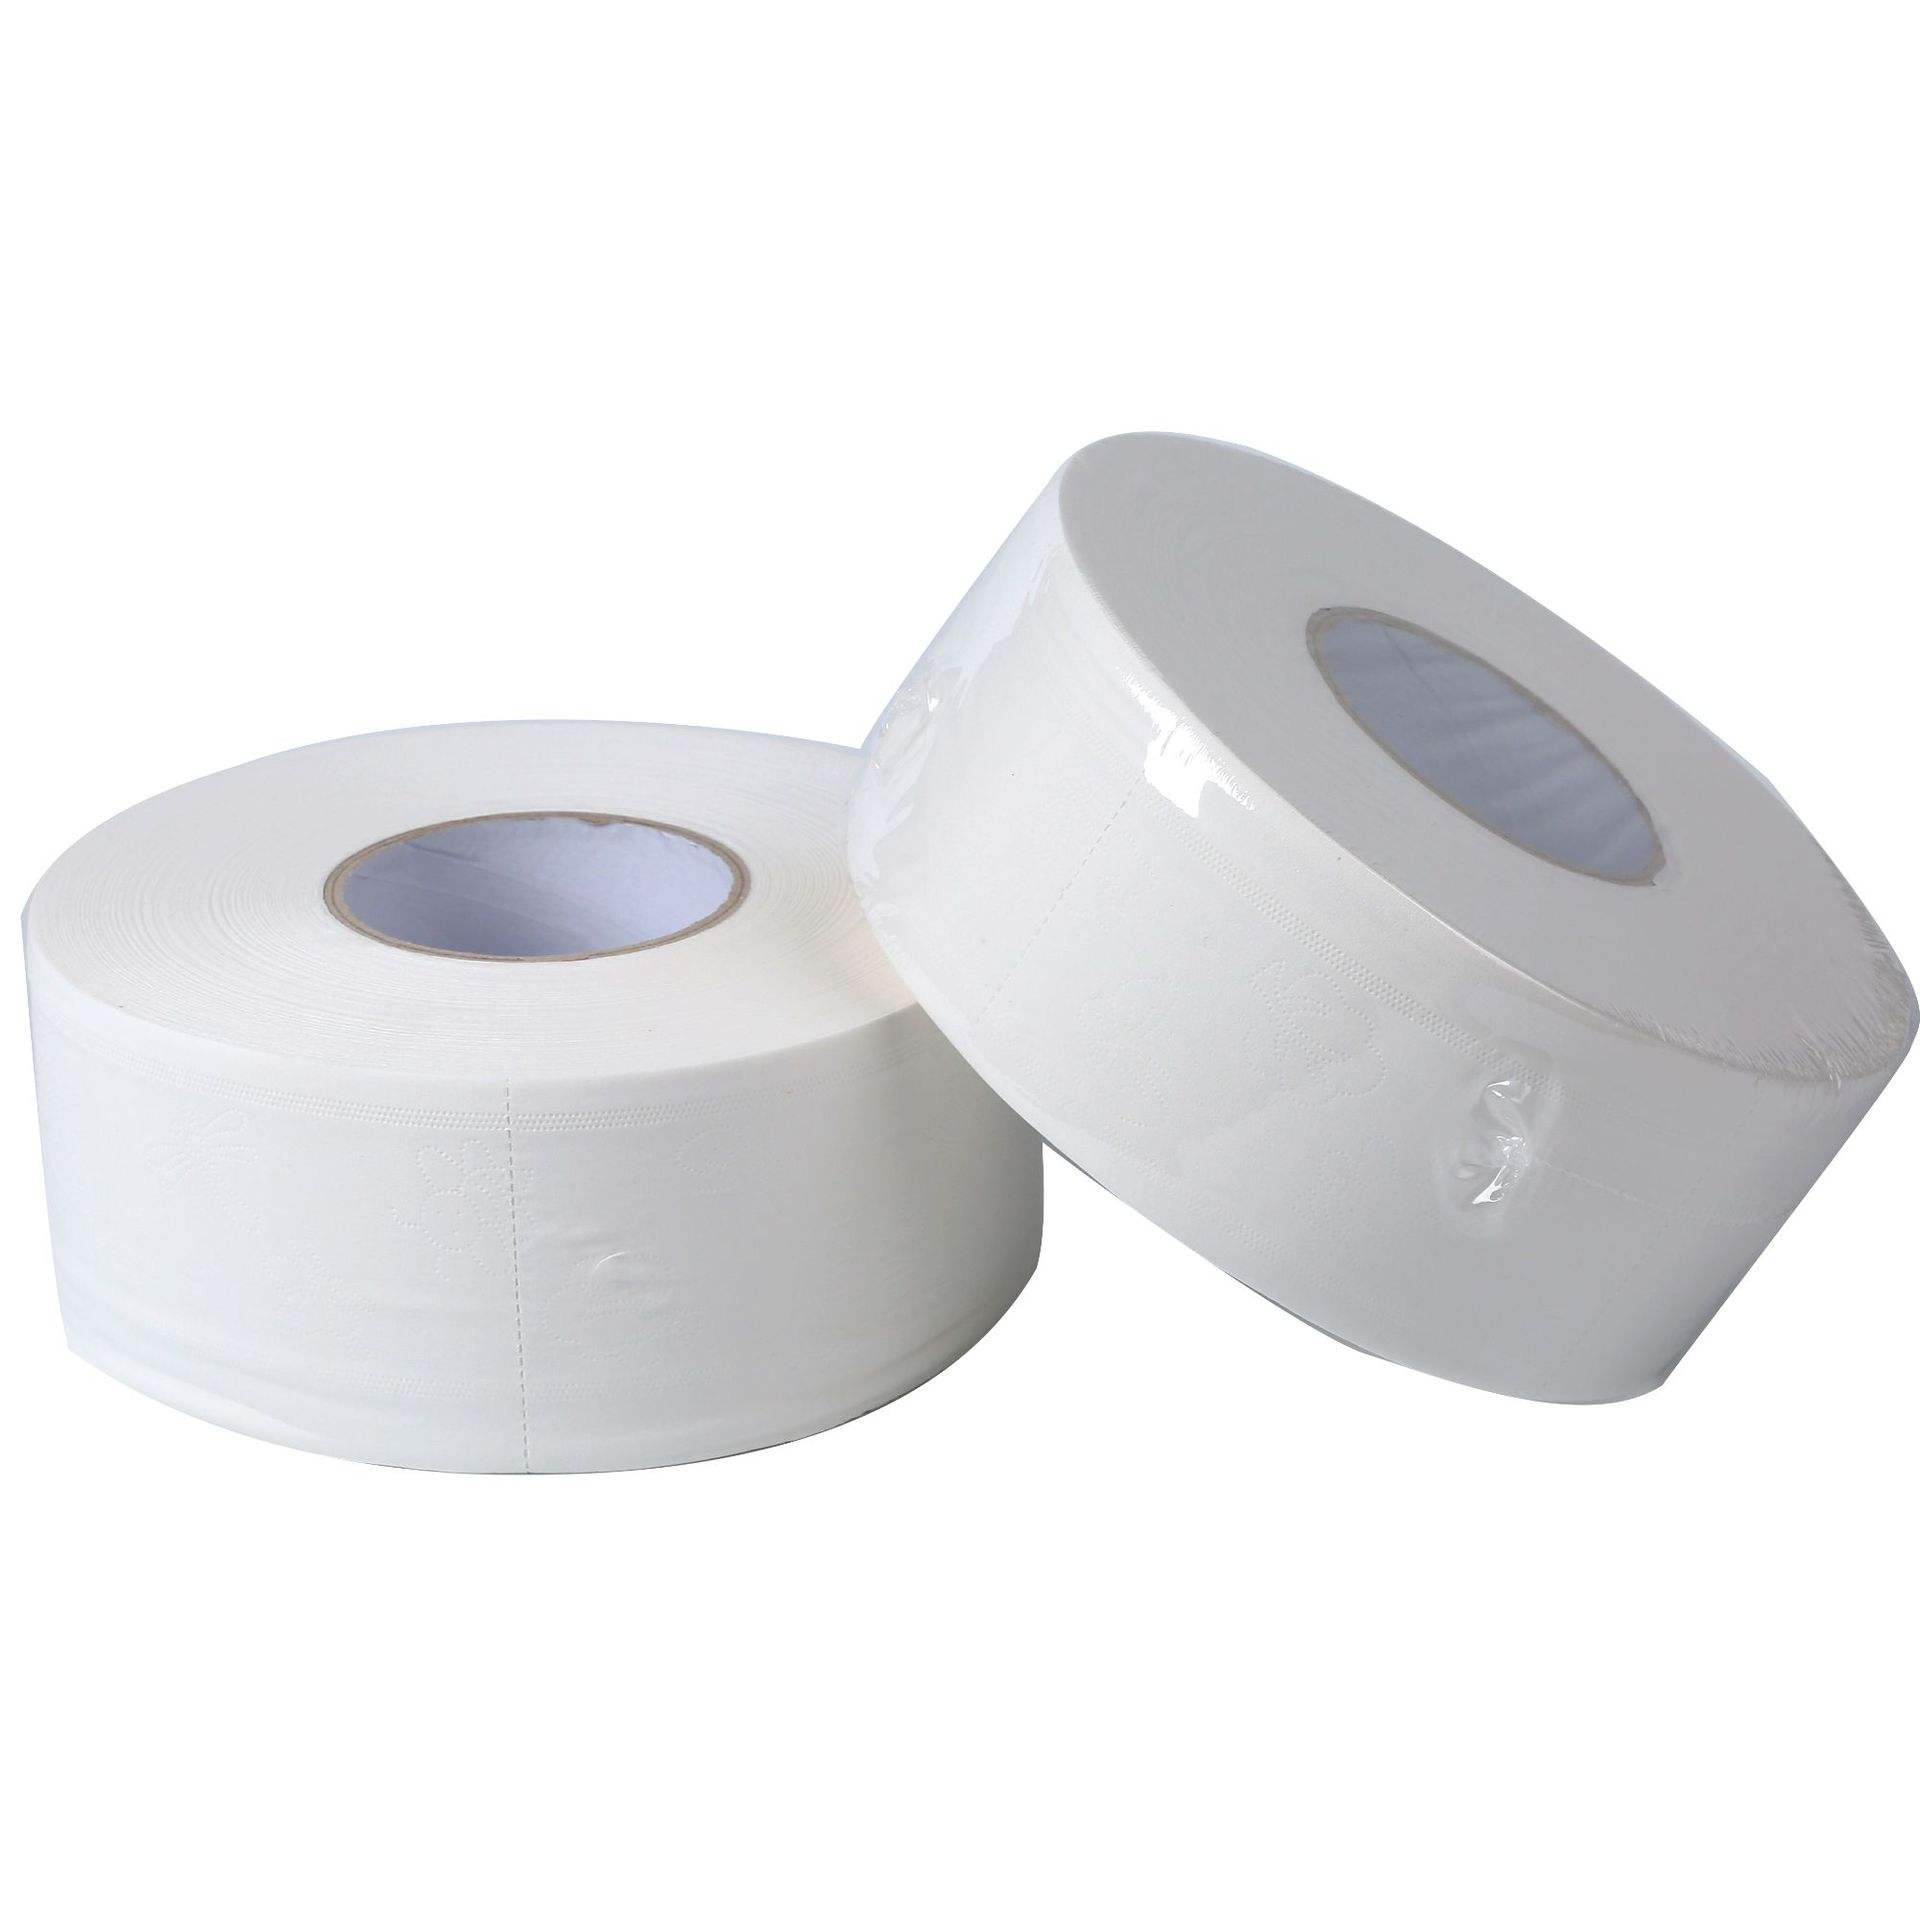 Openbare 700G 4ply Toiletpapier Roll <span class=keywords><strong>Jumbo</strong></span> Wc Roll Fujian Fabrikant